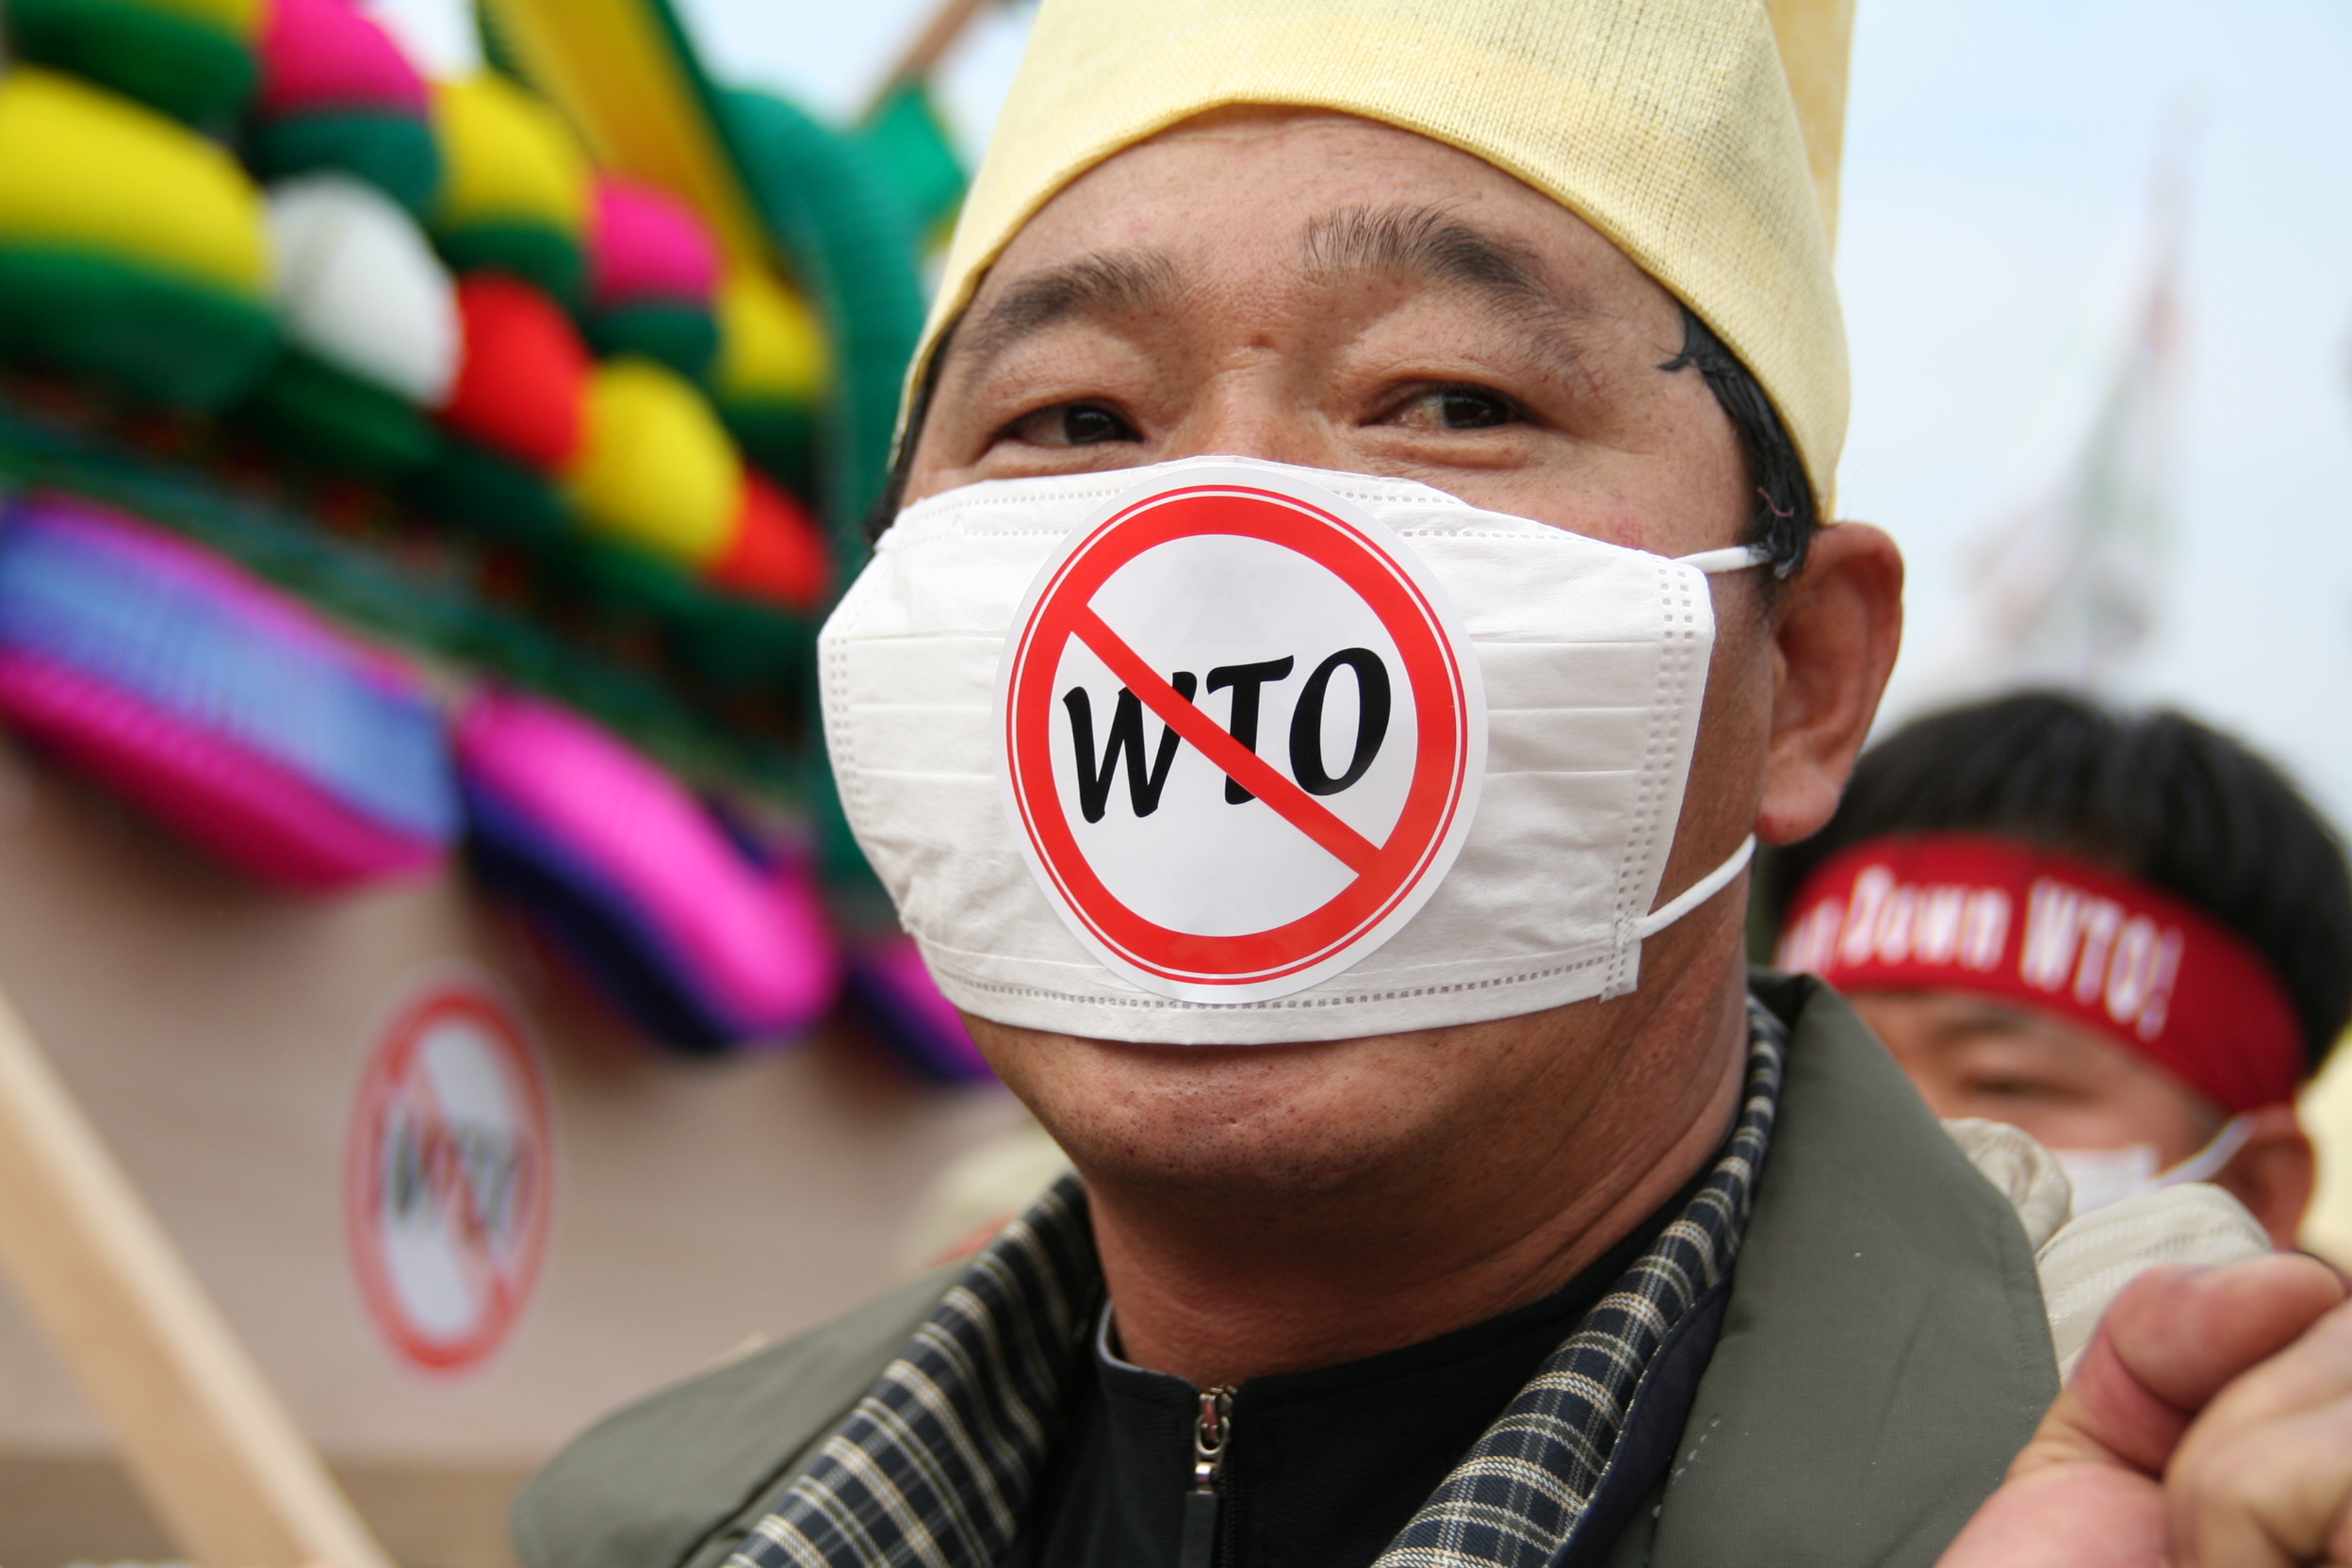 Chinese no to wto